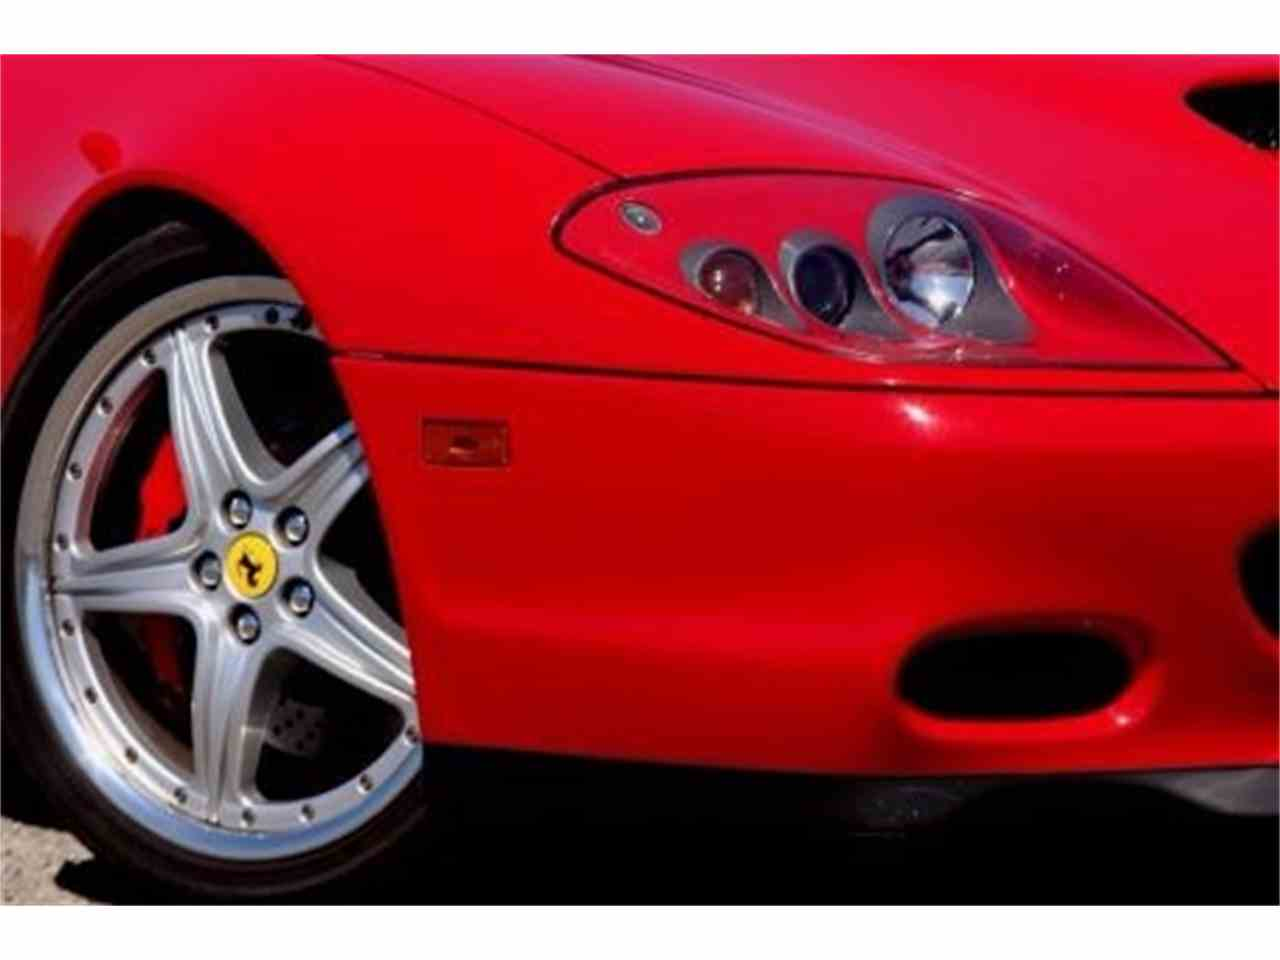 Large Picture of 2003 Ferrari 575 Maranello - $267,500.00 Offered by Gullwing Motor Cars - KH6P